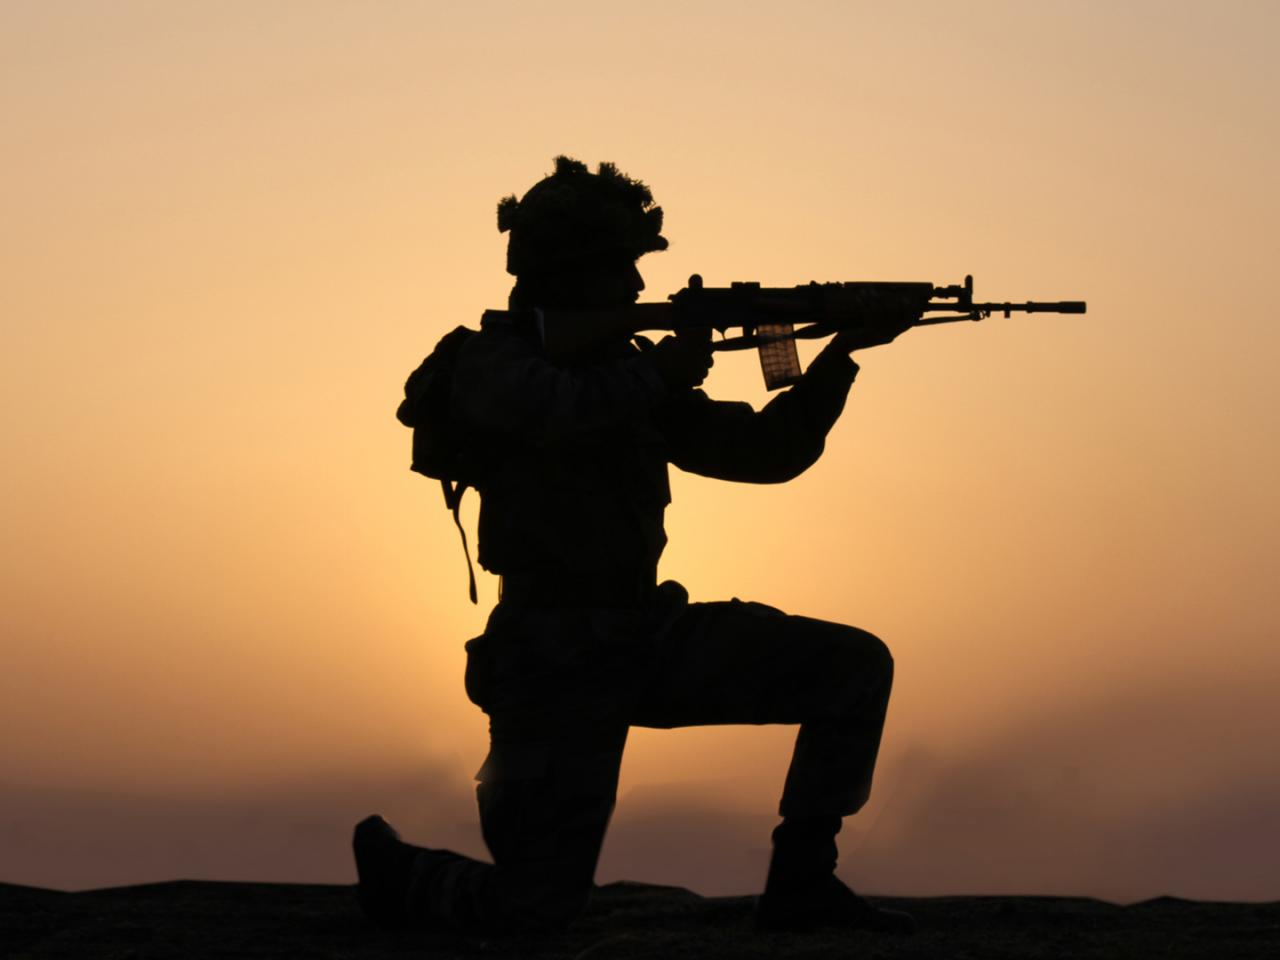 Indian Army Wallpaper With Soldier In Silhouette Hd Wallpapers Wallpapers Download High Resolution Wallpapers